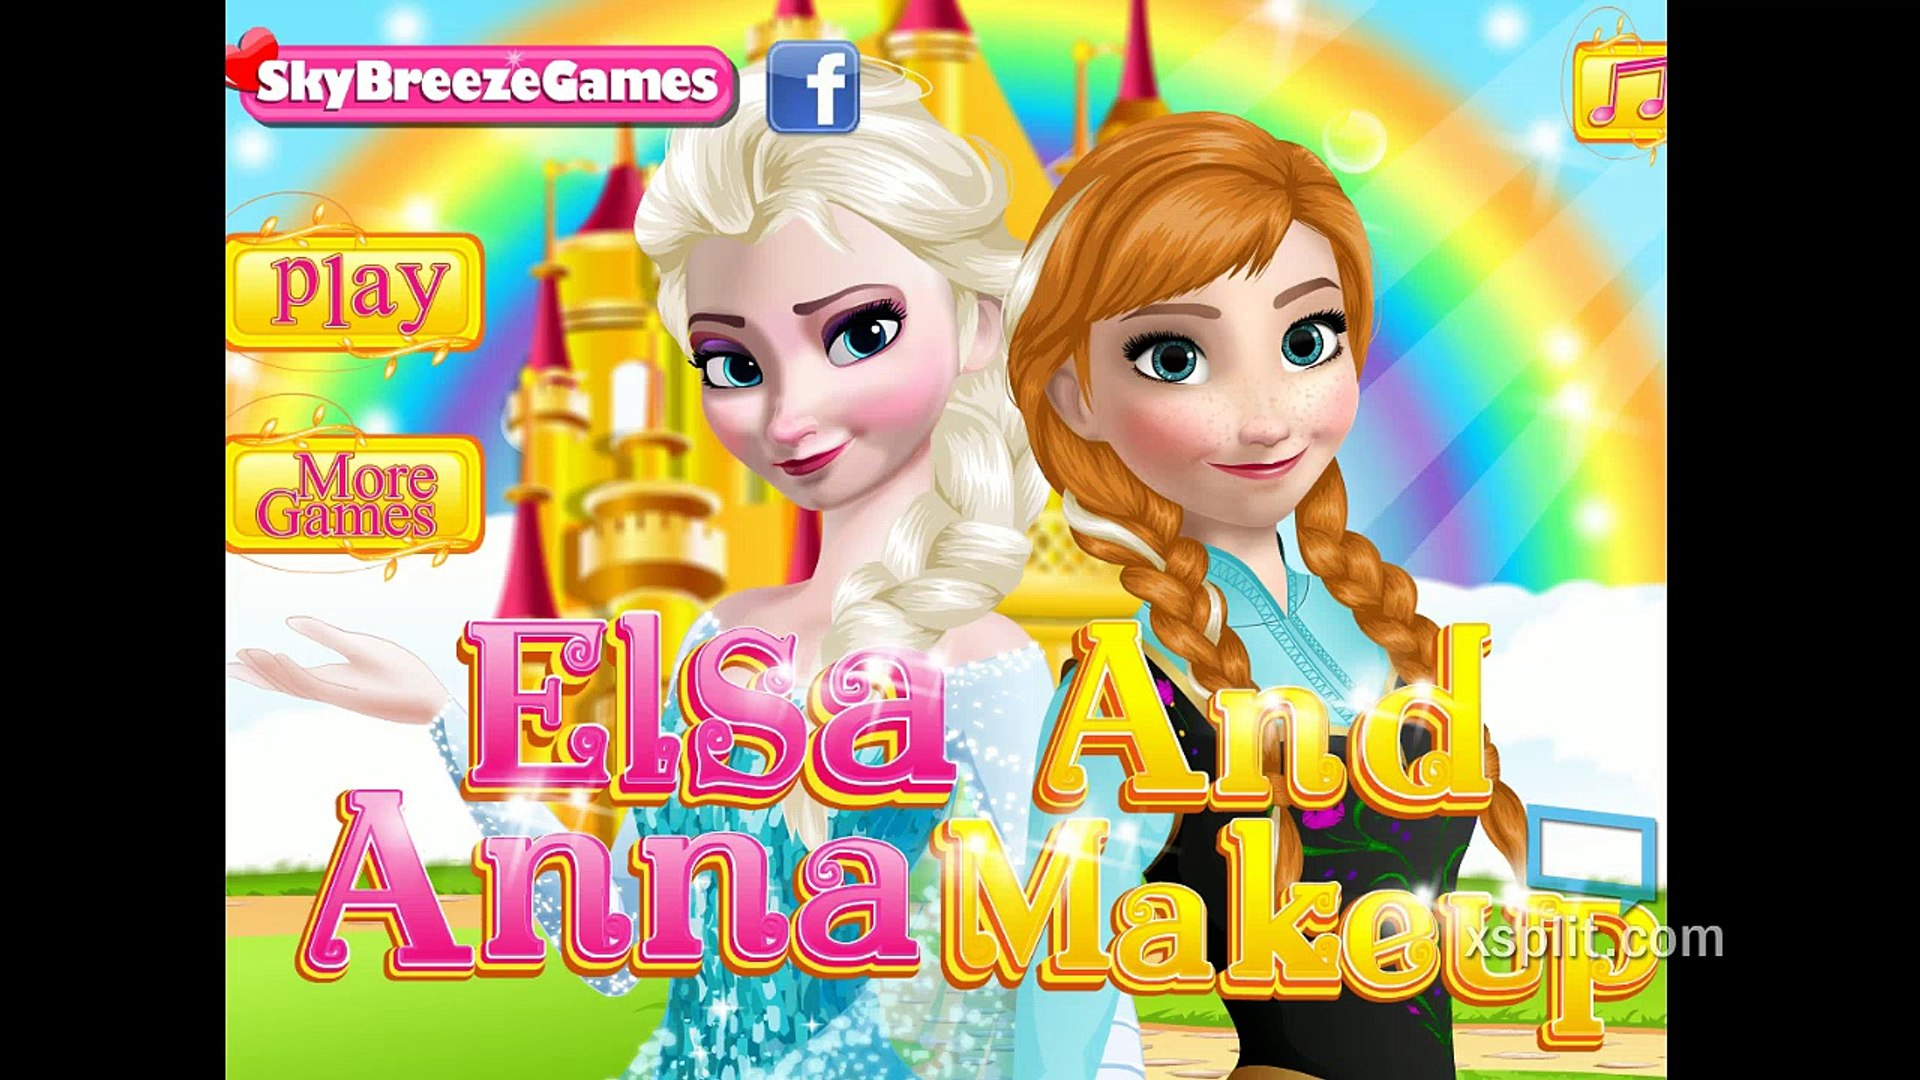 Elsa And Anna Makeup Frozen Fashion & Beauty Competitions